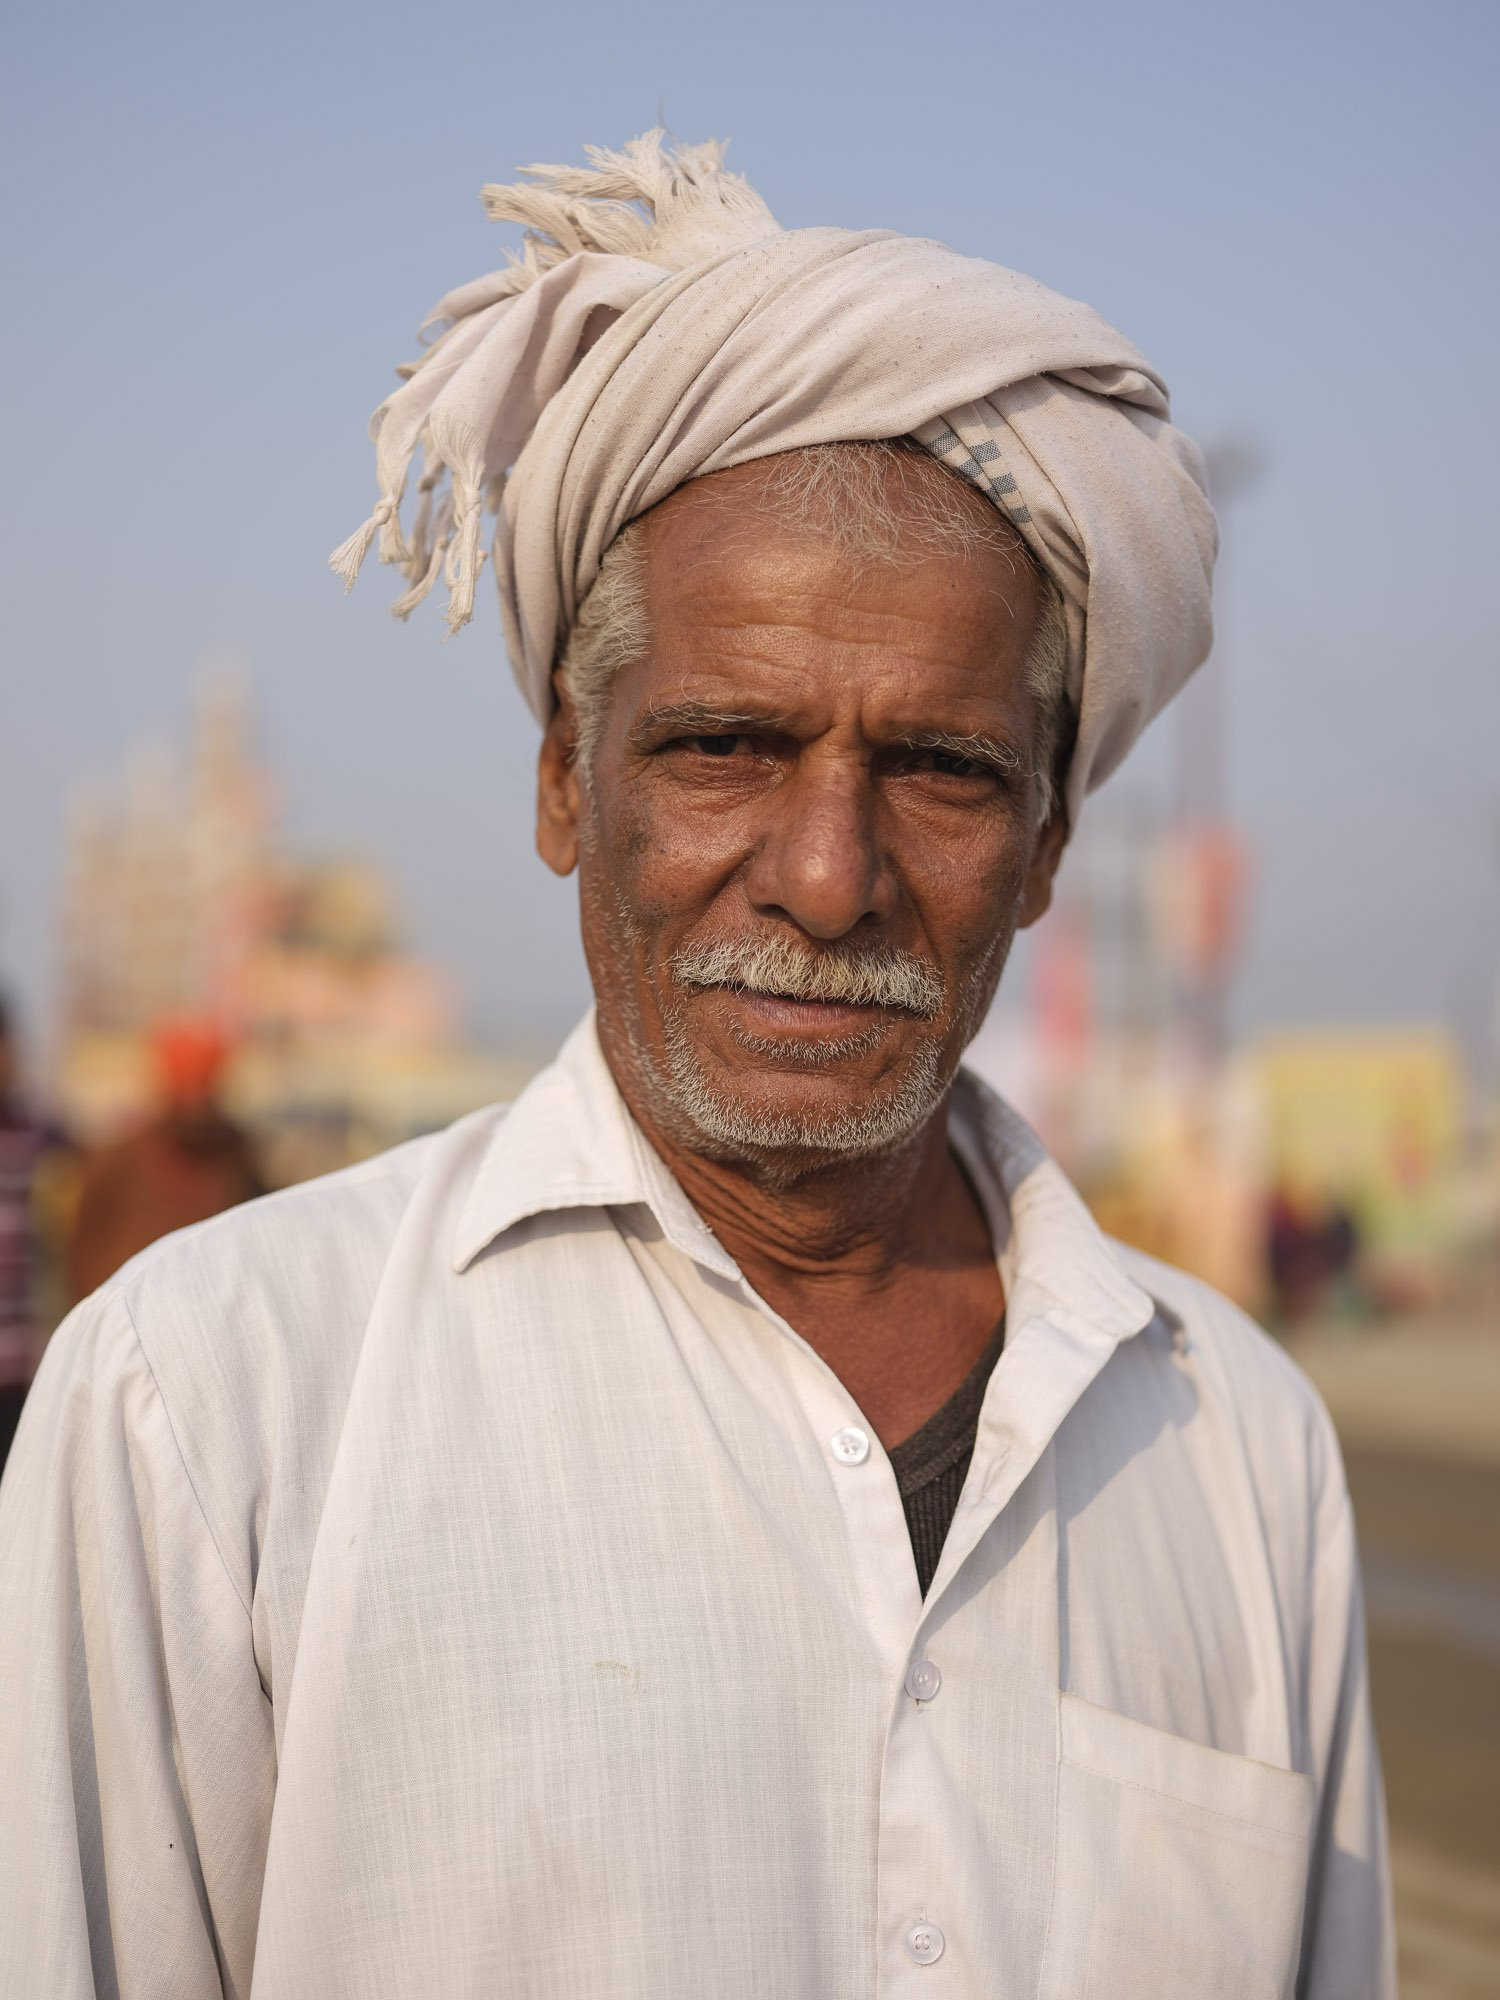 portrait pilgrims Kumbh mela 2019 India Allahabad Prayagraj Ardh hindu religious Festival event rivers photographer jose jeuland photography